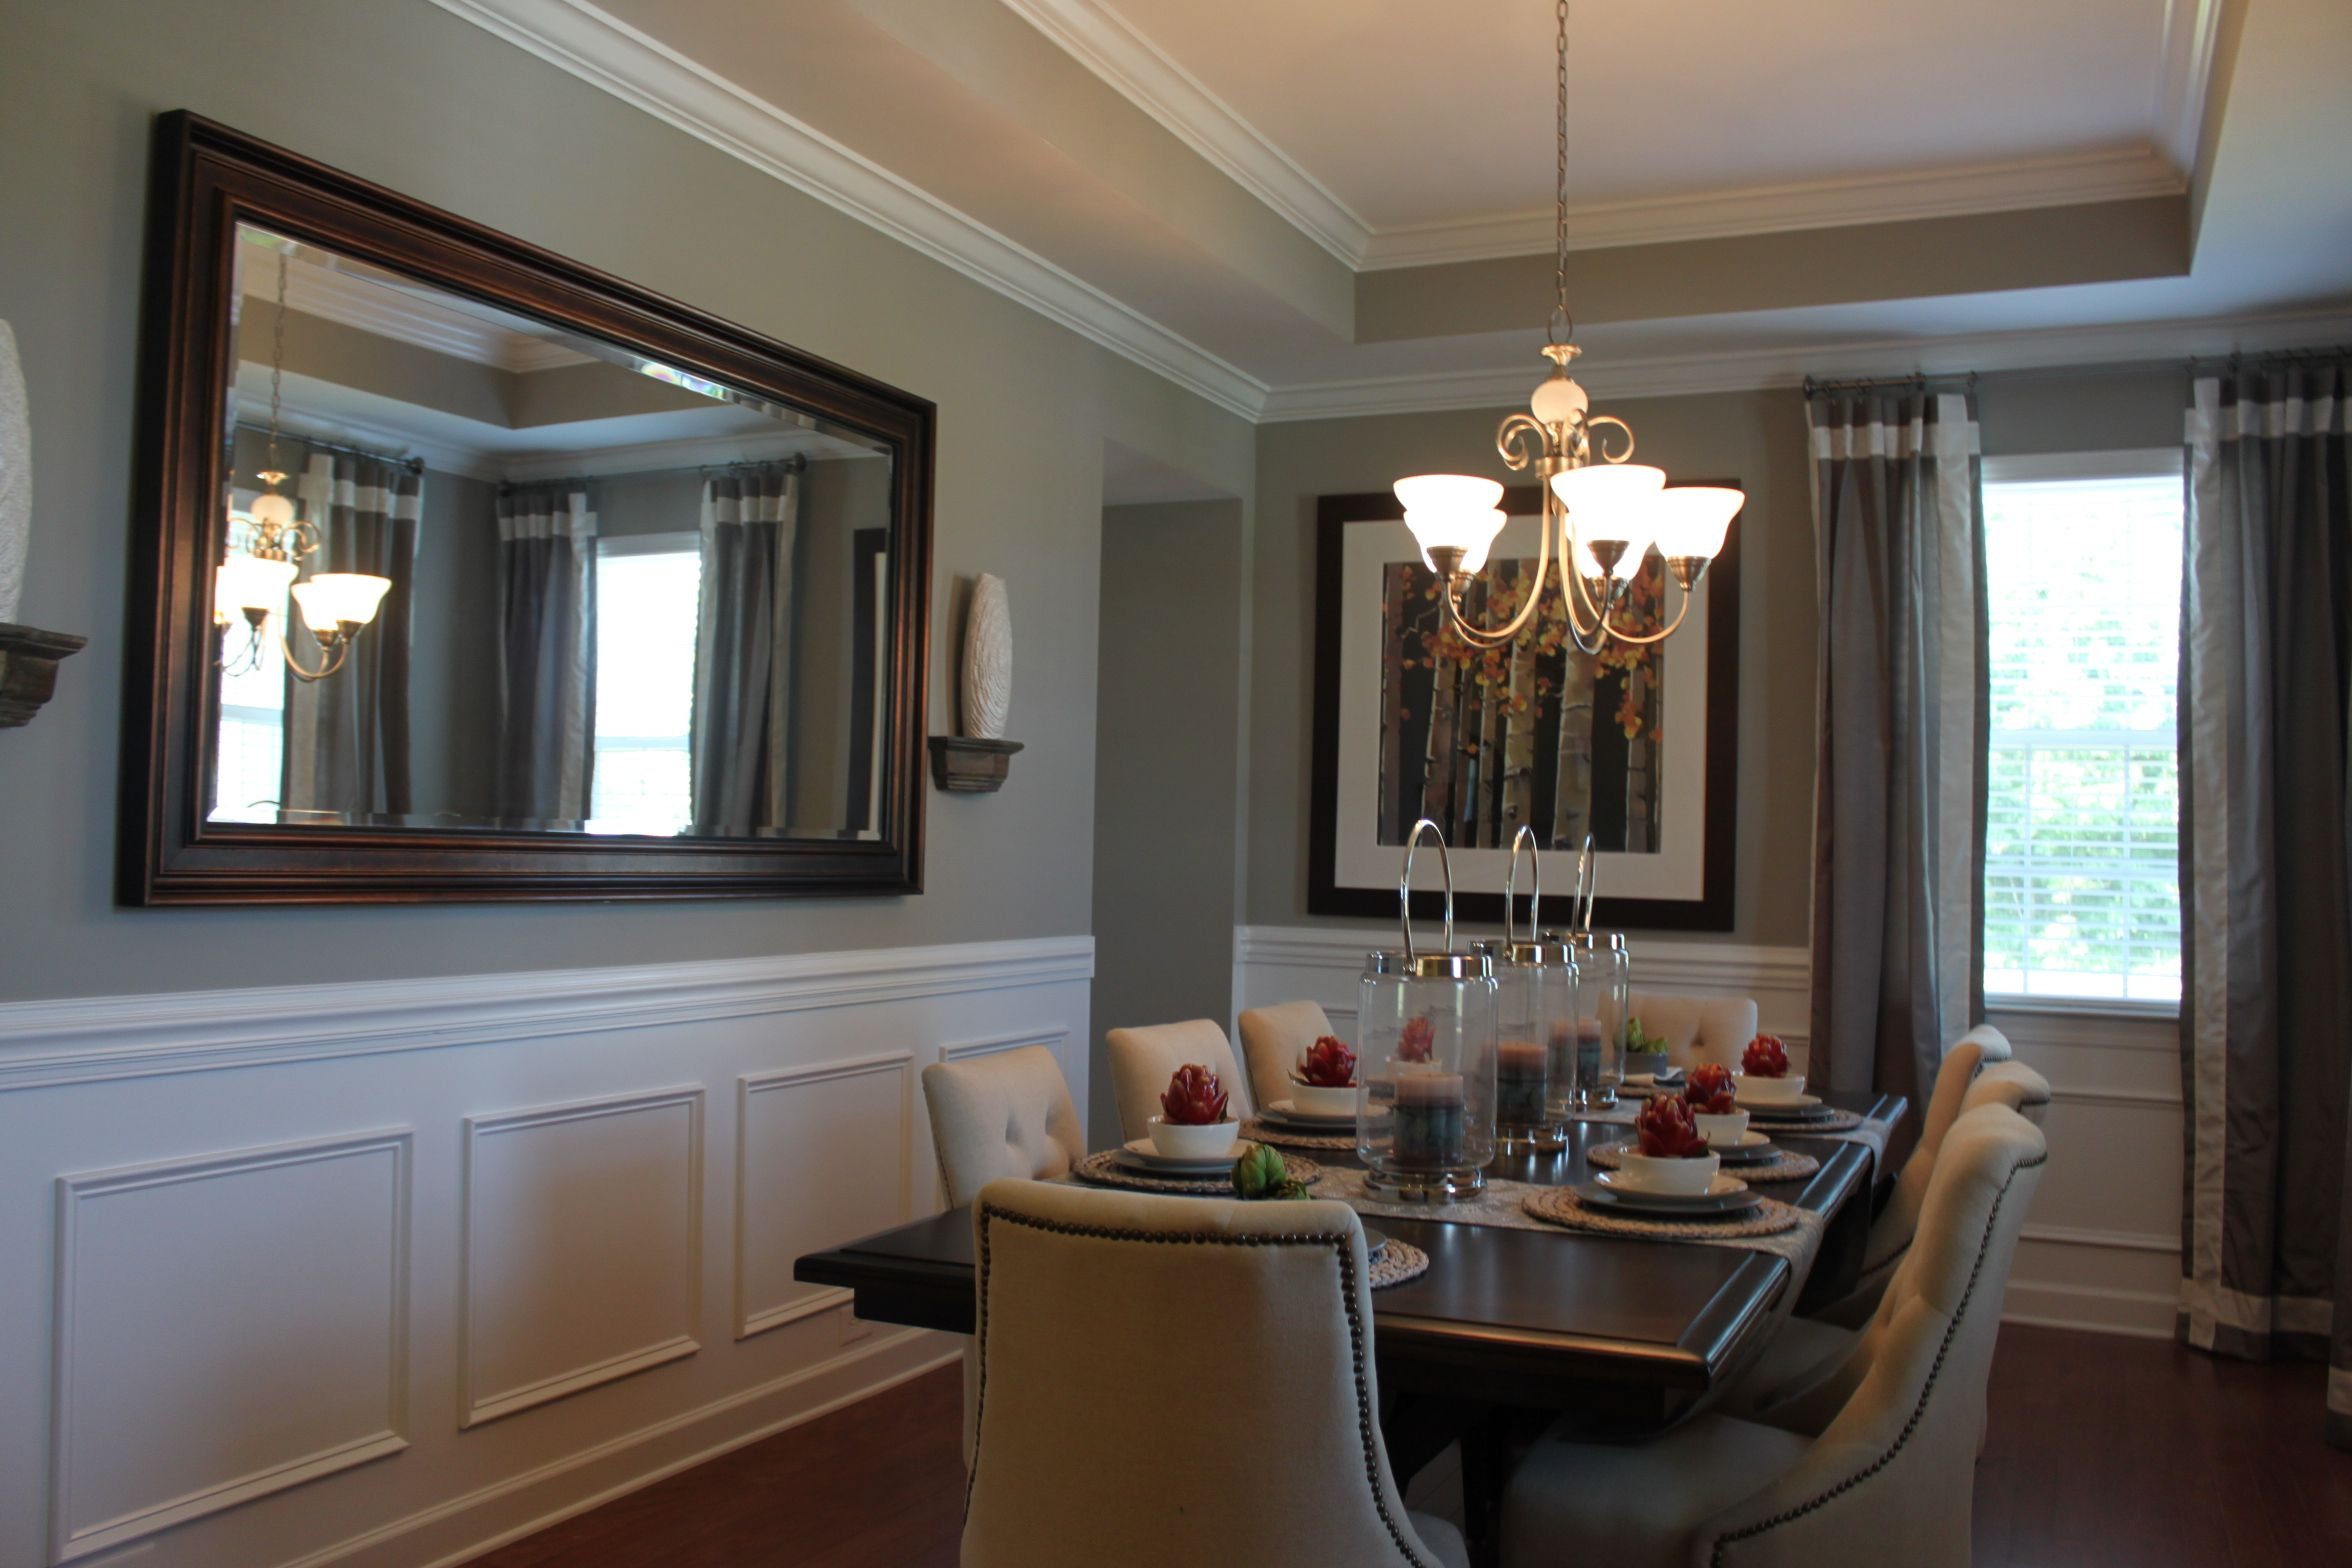 Superbe Fabulous Formal Dining Room With Beautiful Tray Ceiling And Crown Moldings